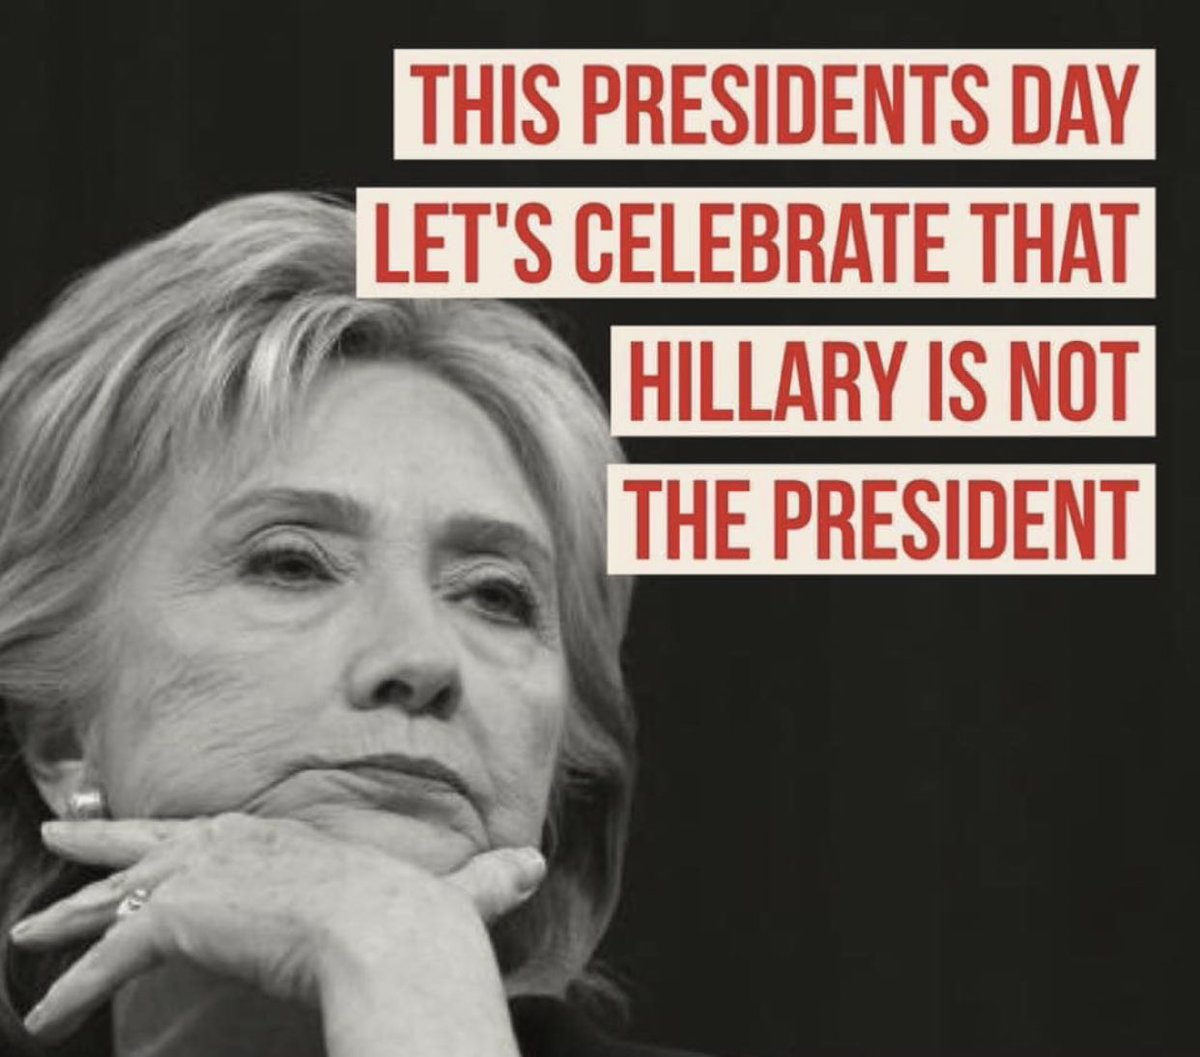 This Presidents day let's celebrate that Hillary is not the President! #WeThePeople #TheSilentMajorityCameOut #TrumpIsOurPresident #HeIsAmericasPresident #GodBlessAmerica #Trump2020LandSlide